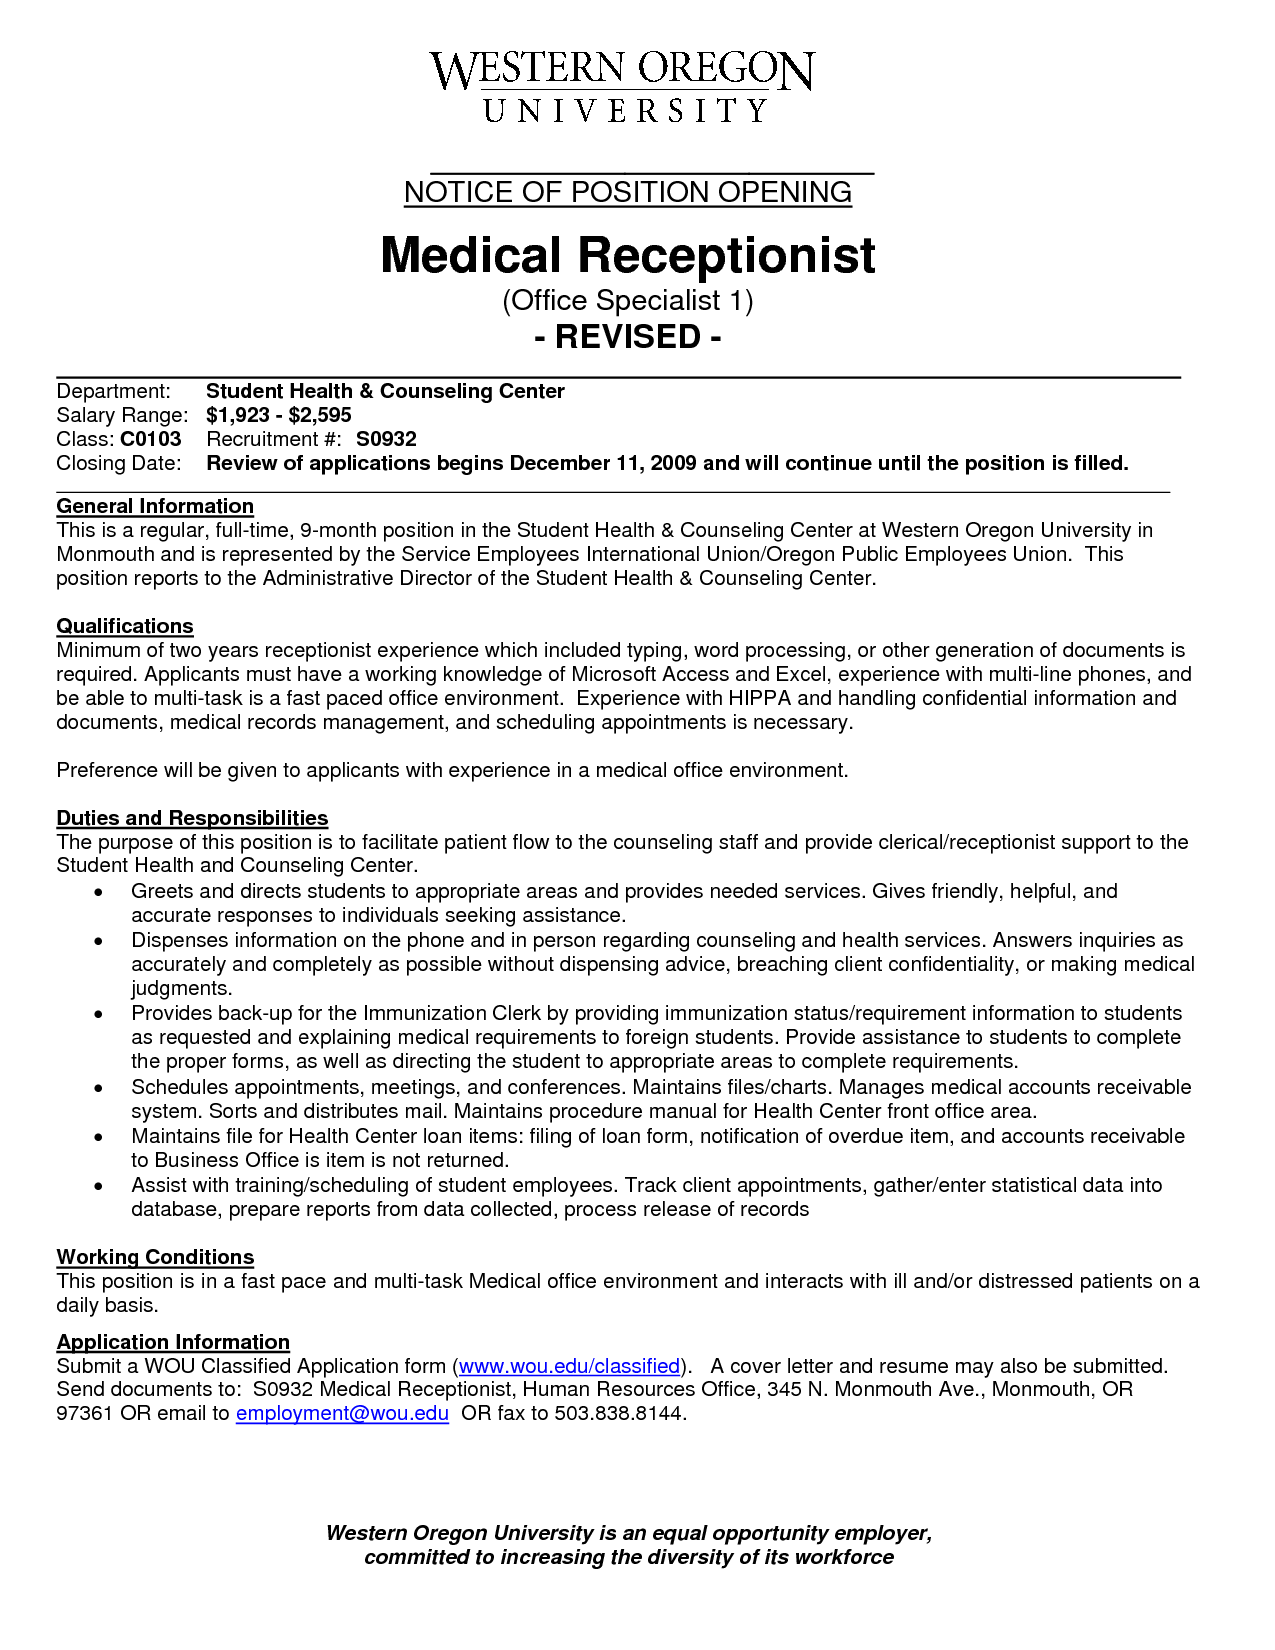 No Experience Resume Template Medical Receptionist Resume With No Experience  Httpwww